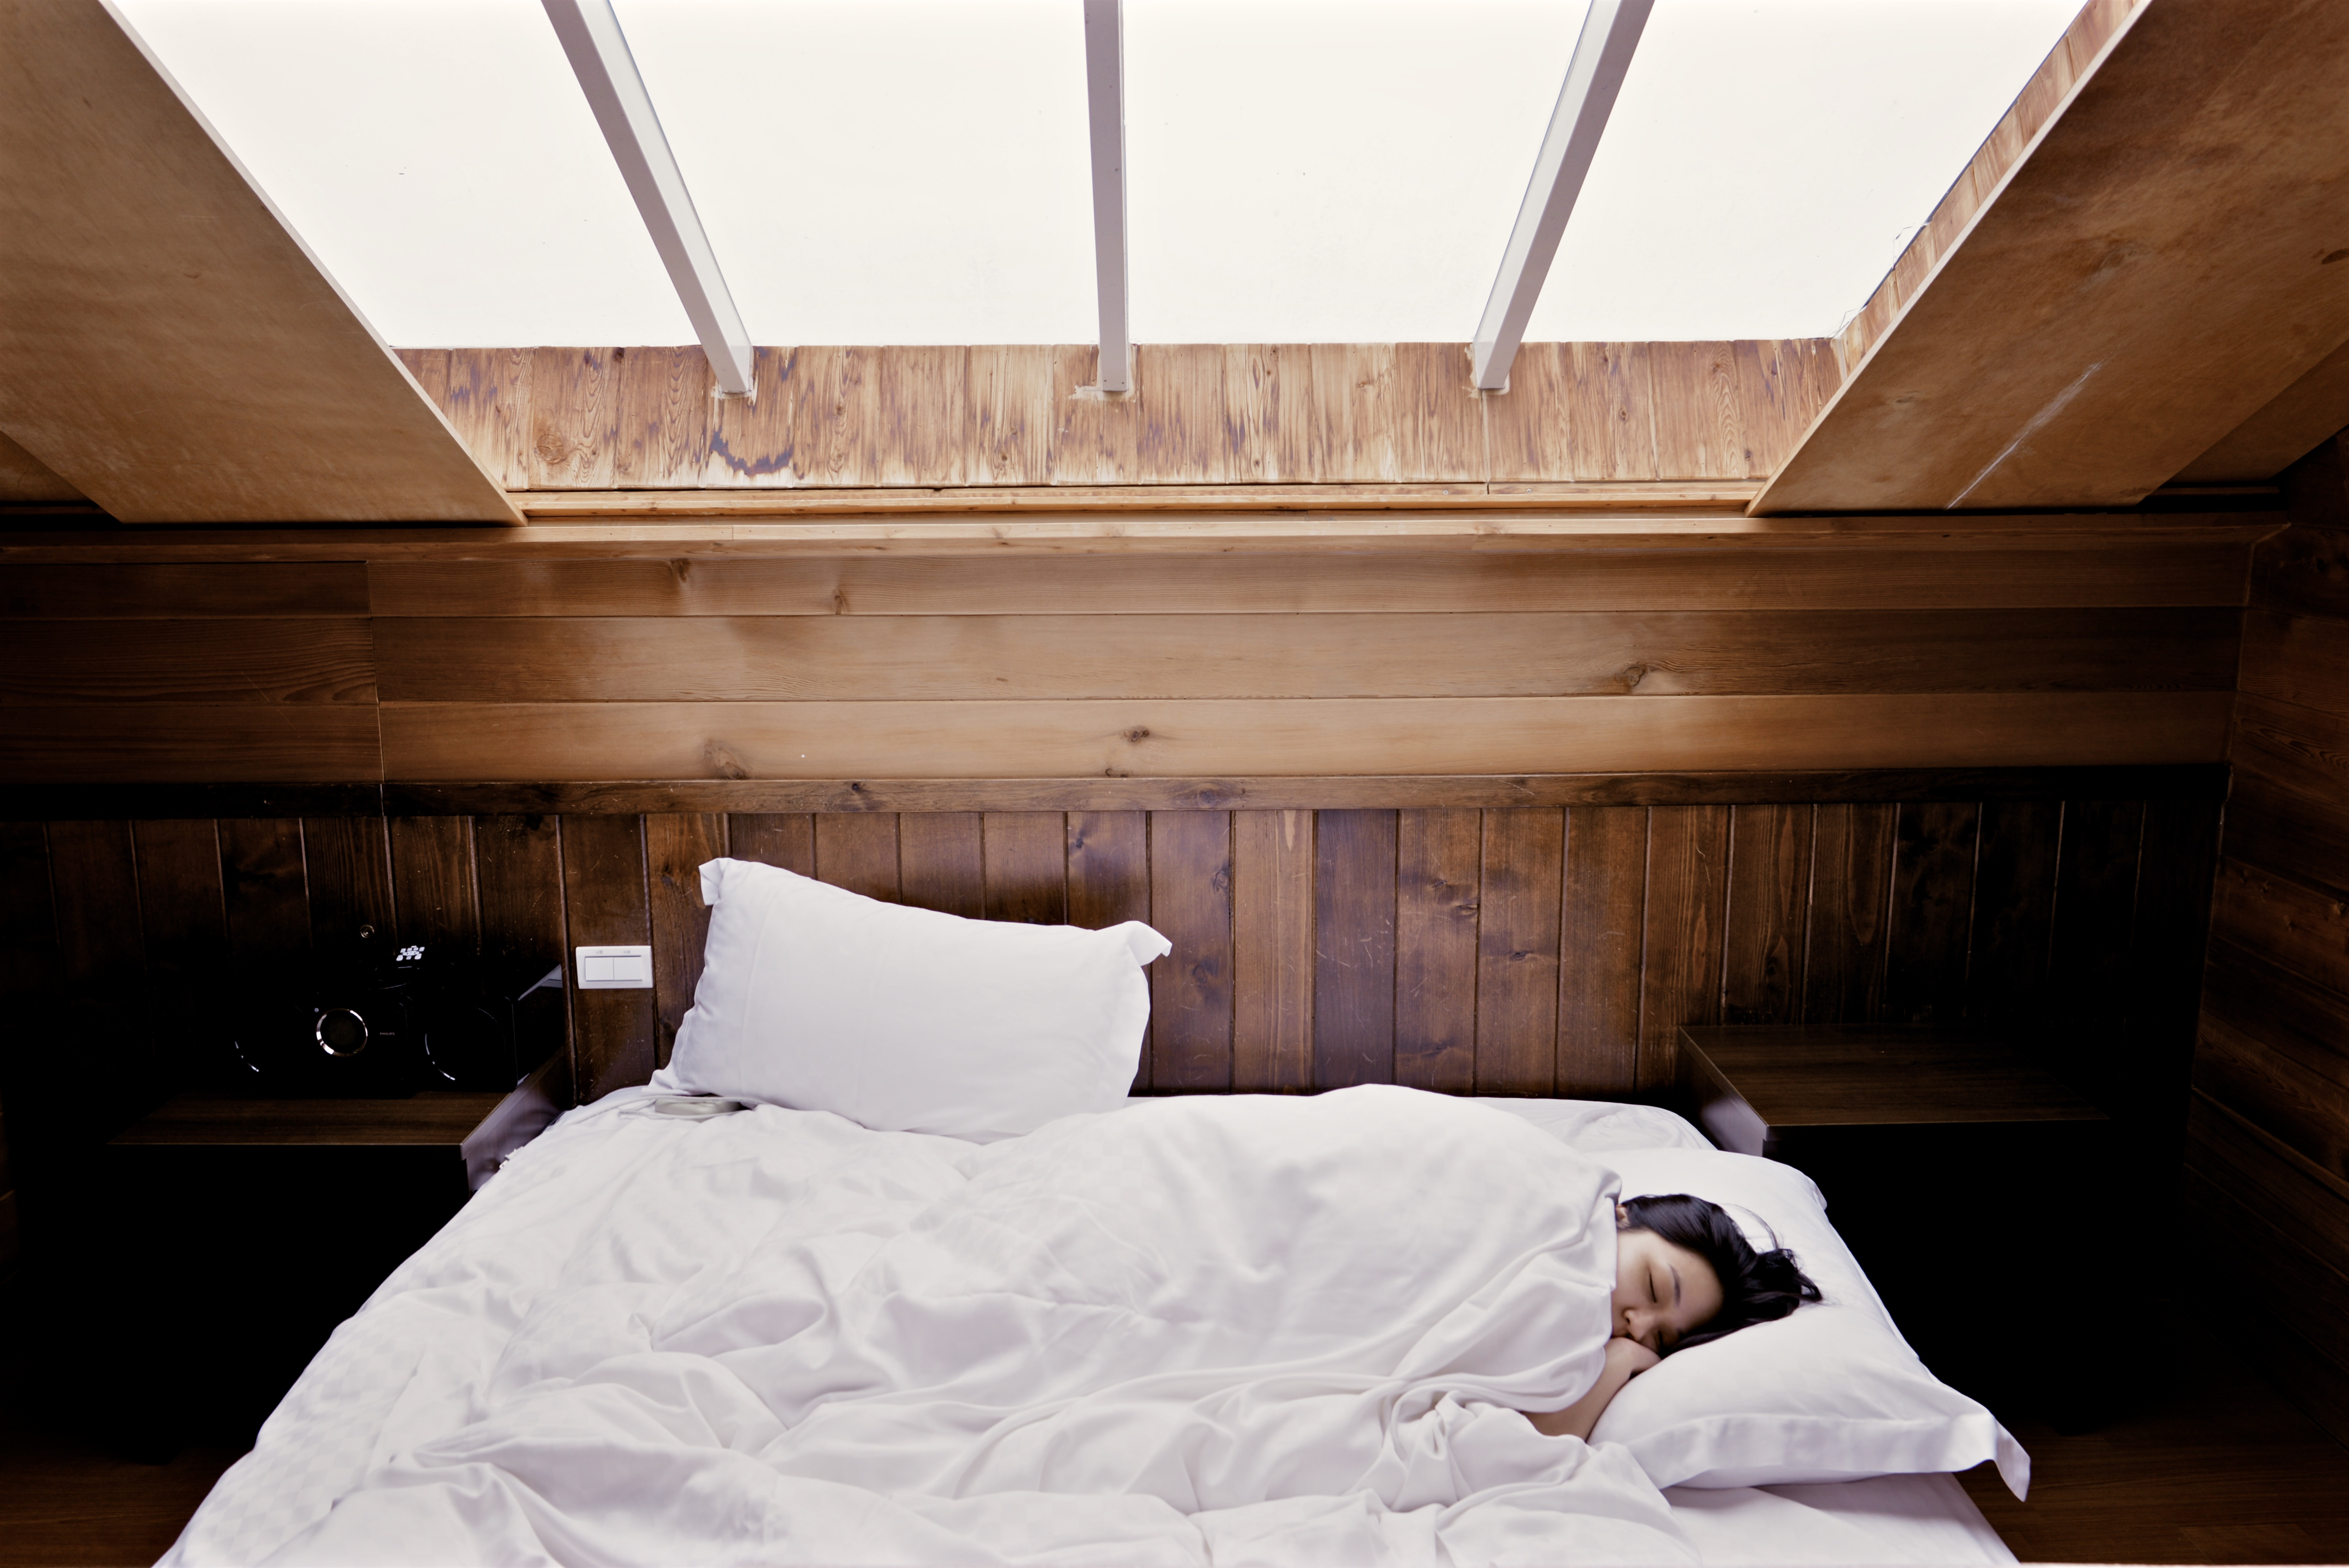 sleep_wooden cabin_white sheets